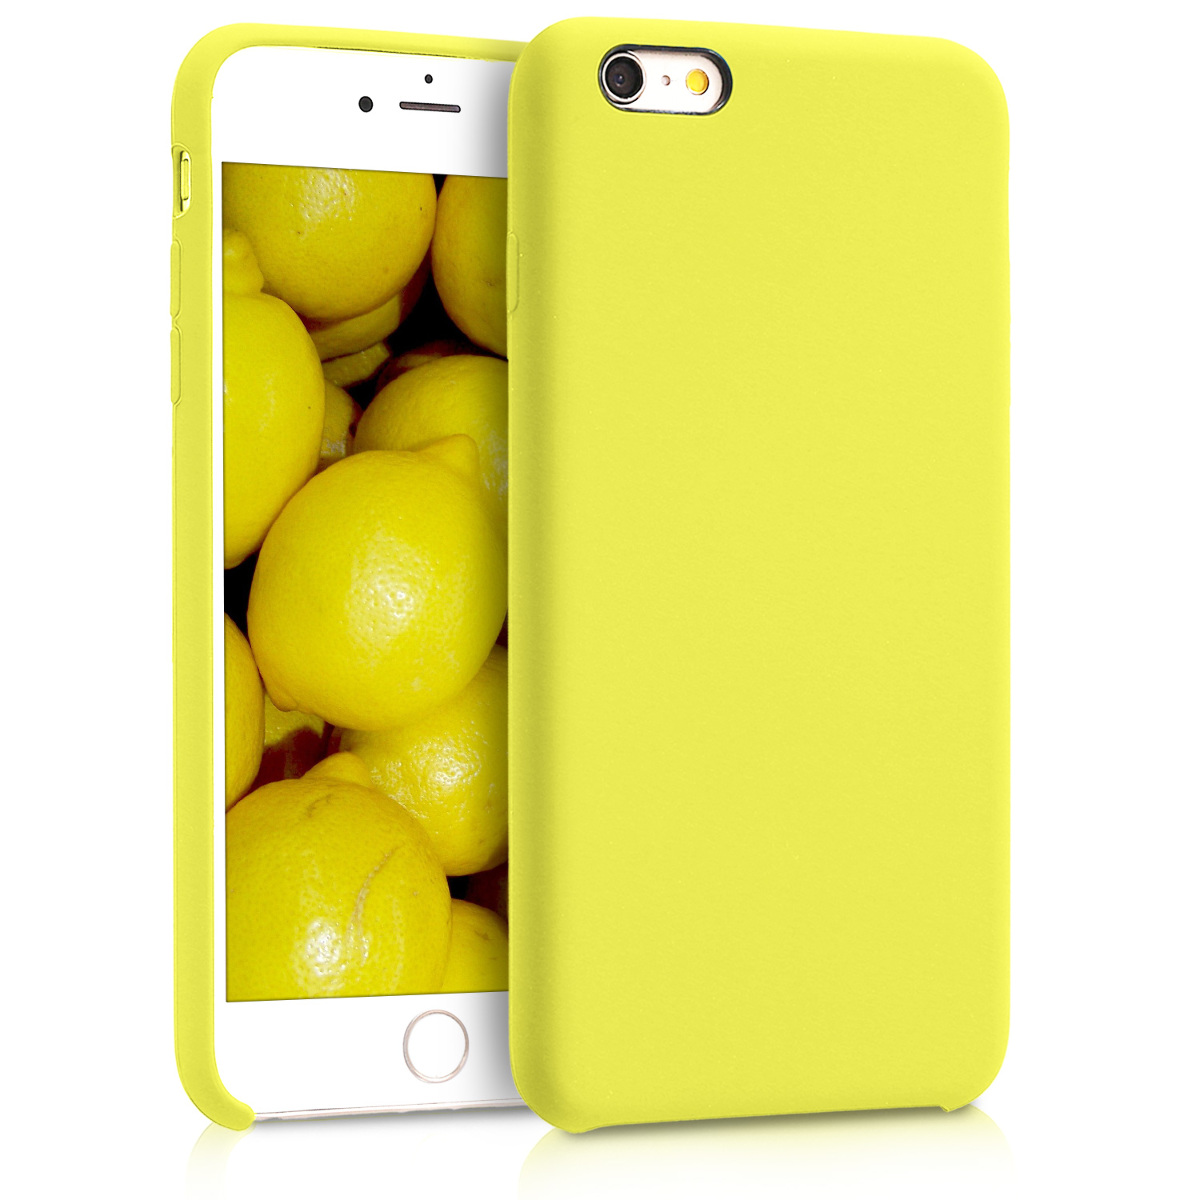 KW Θήκη Σιλικόνης iPhone 6 Plus / 6S Plus - Soft Flexible Rubber Protective Cover - Neon Yellow - (40841.75)